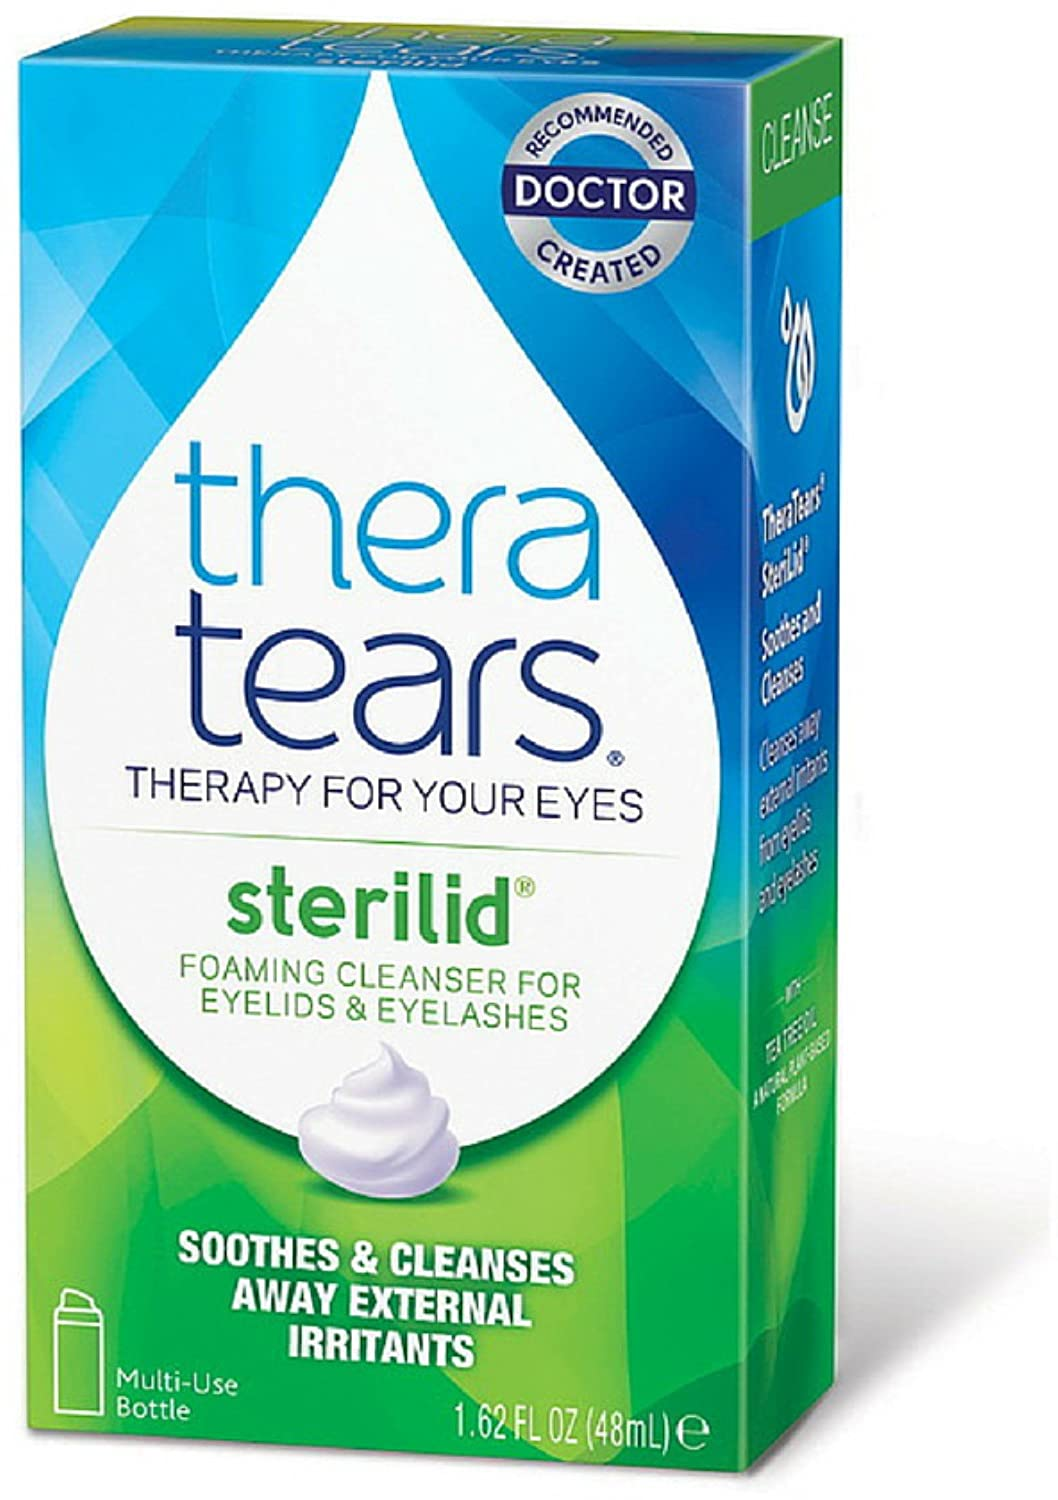 TheraTears Sterilid Eyelid Cleanser, Multi. SP 3 Pack 4.86 FL OZ Total Thera-II